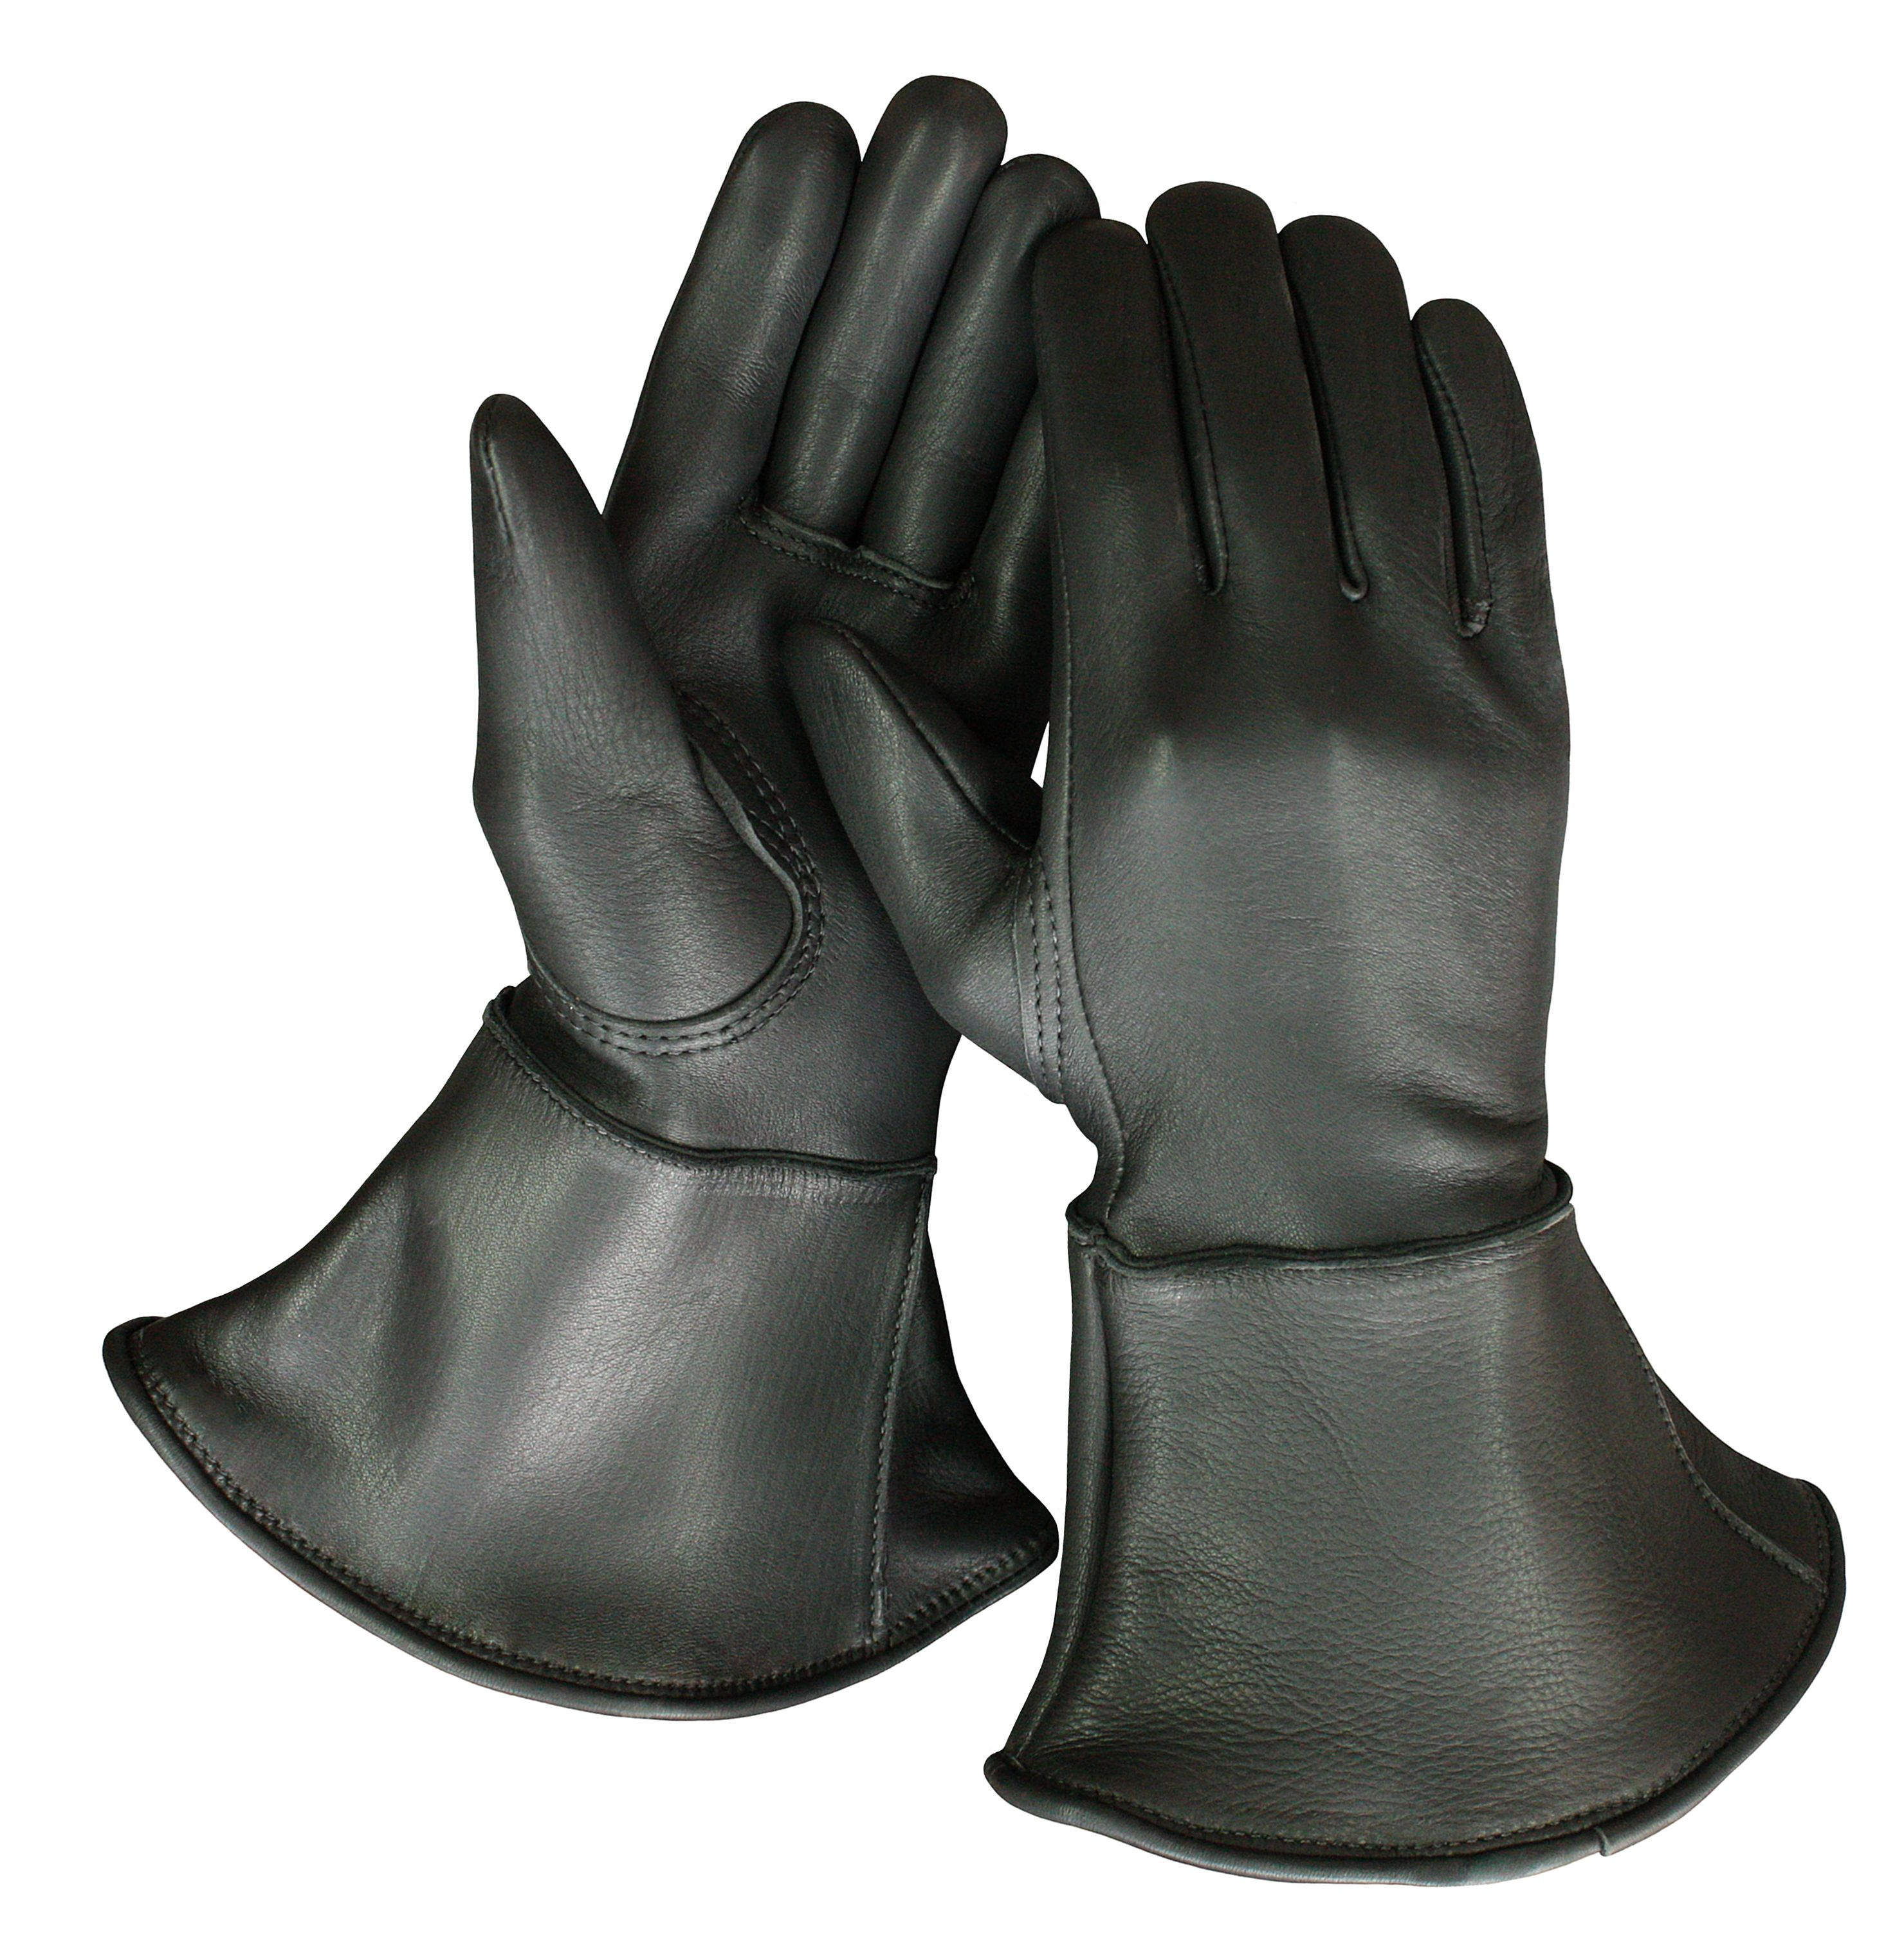 Motorcycle gloves deerskin - Churchill Deerskin 4 Inch Gauntlet Gloves Made In The Usa For Over 100 Years Check Them Motorcycle